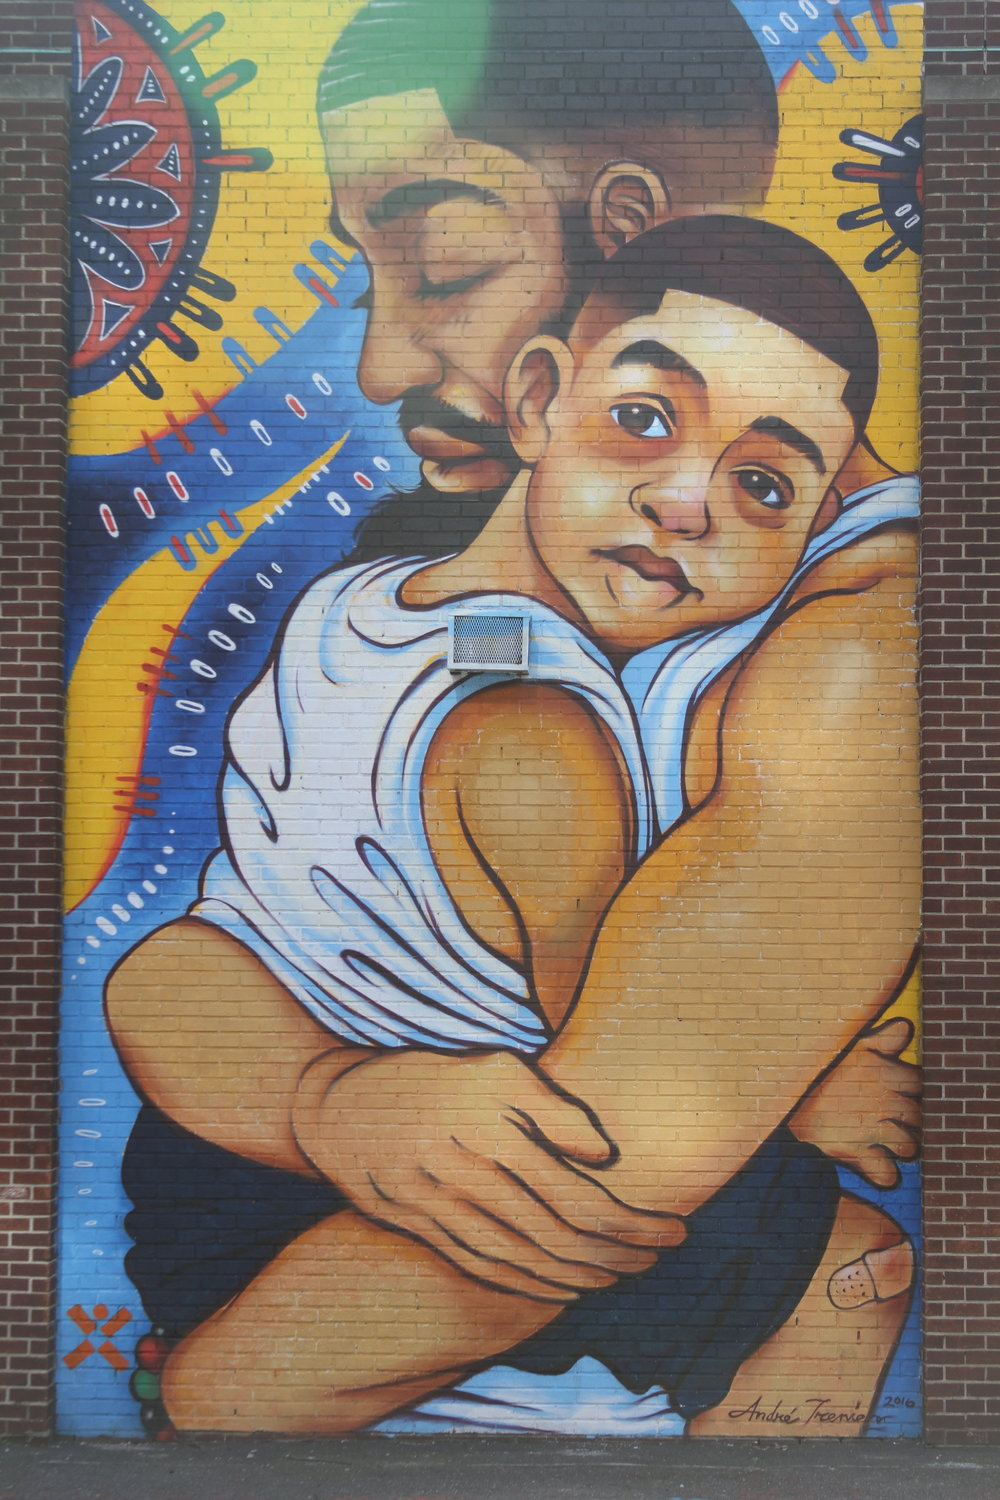 TangibleThoughts.FatherSonMural.ATrenier.JPG